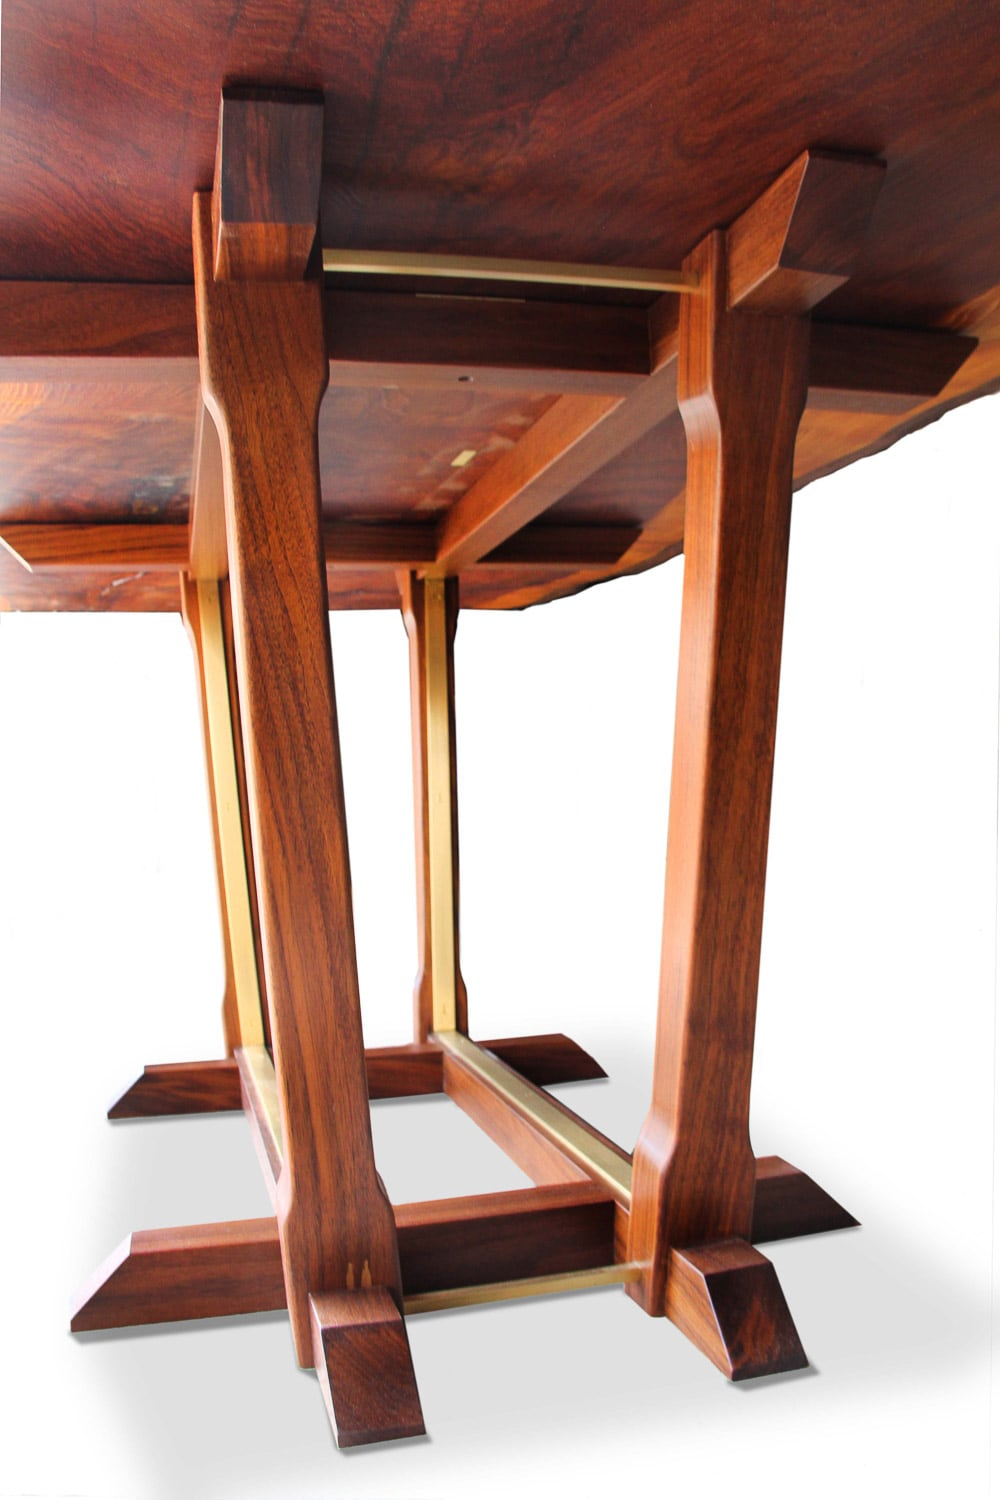 Redwood-table-2.jpg